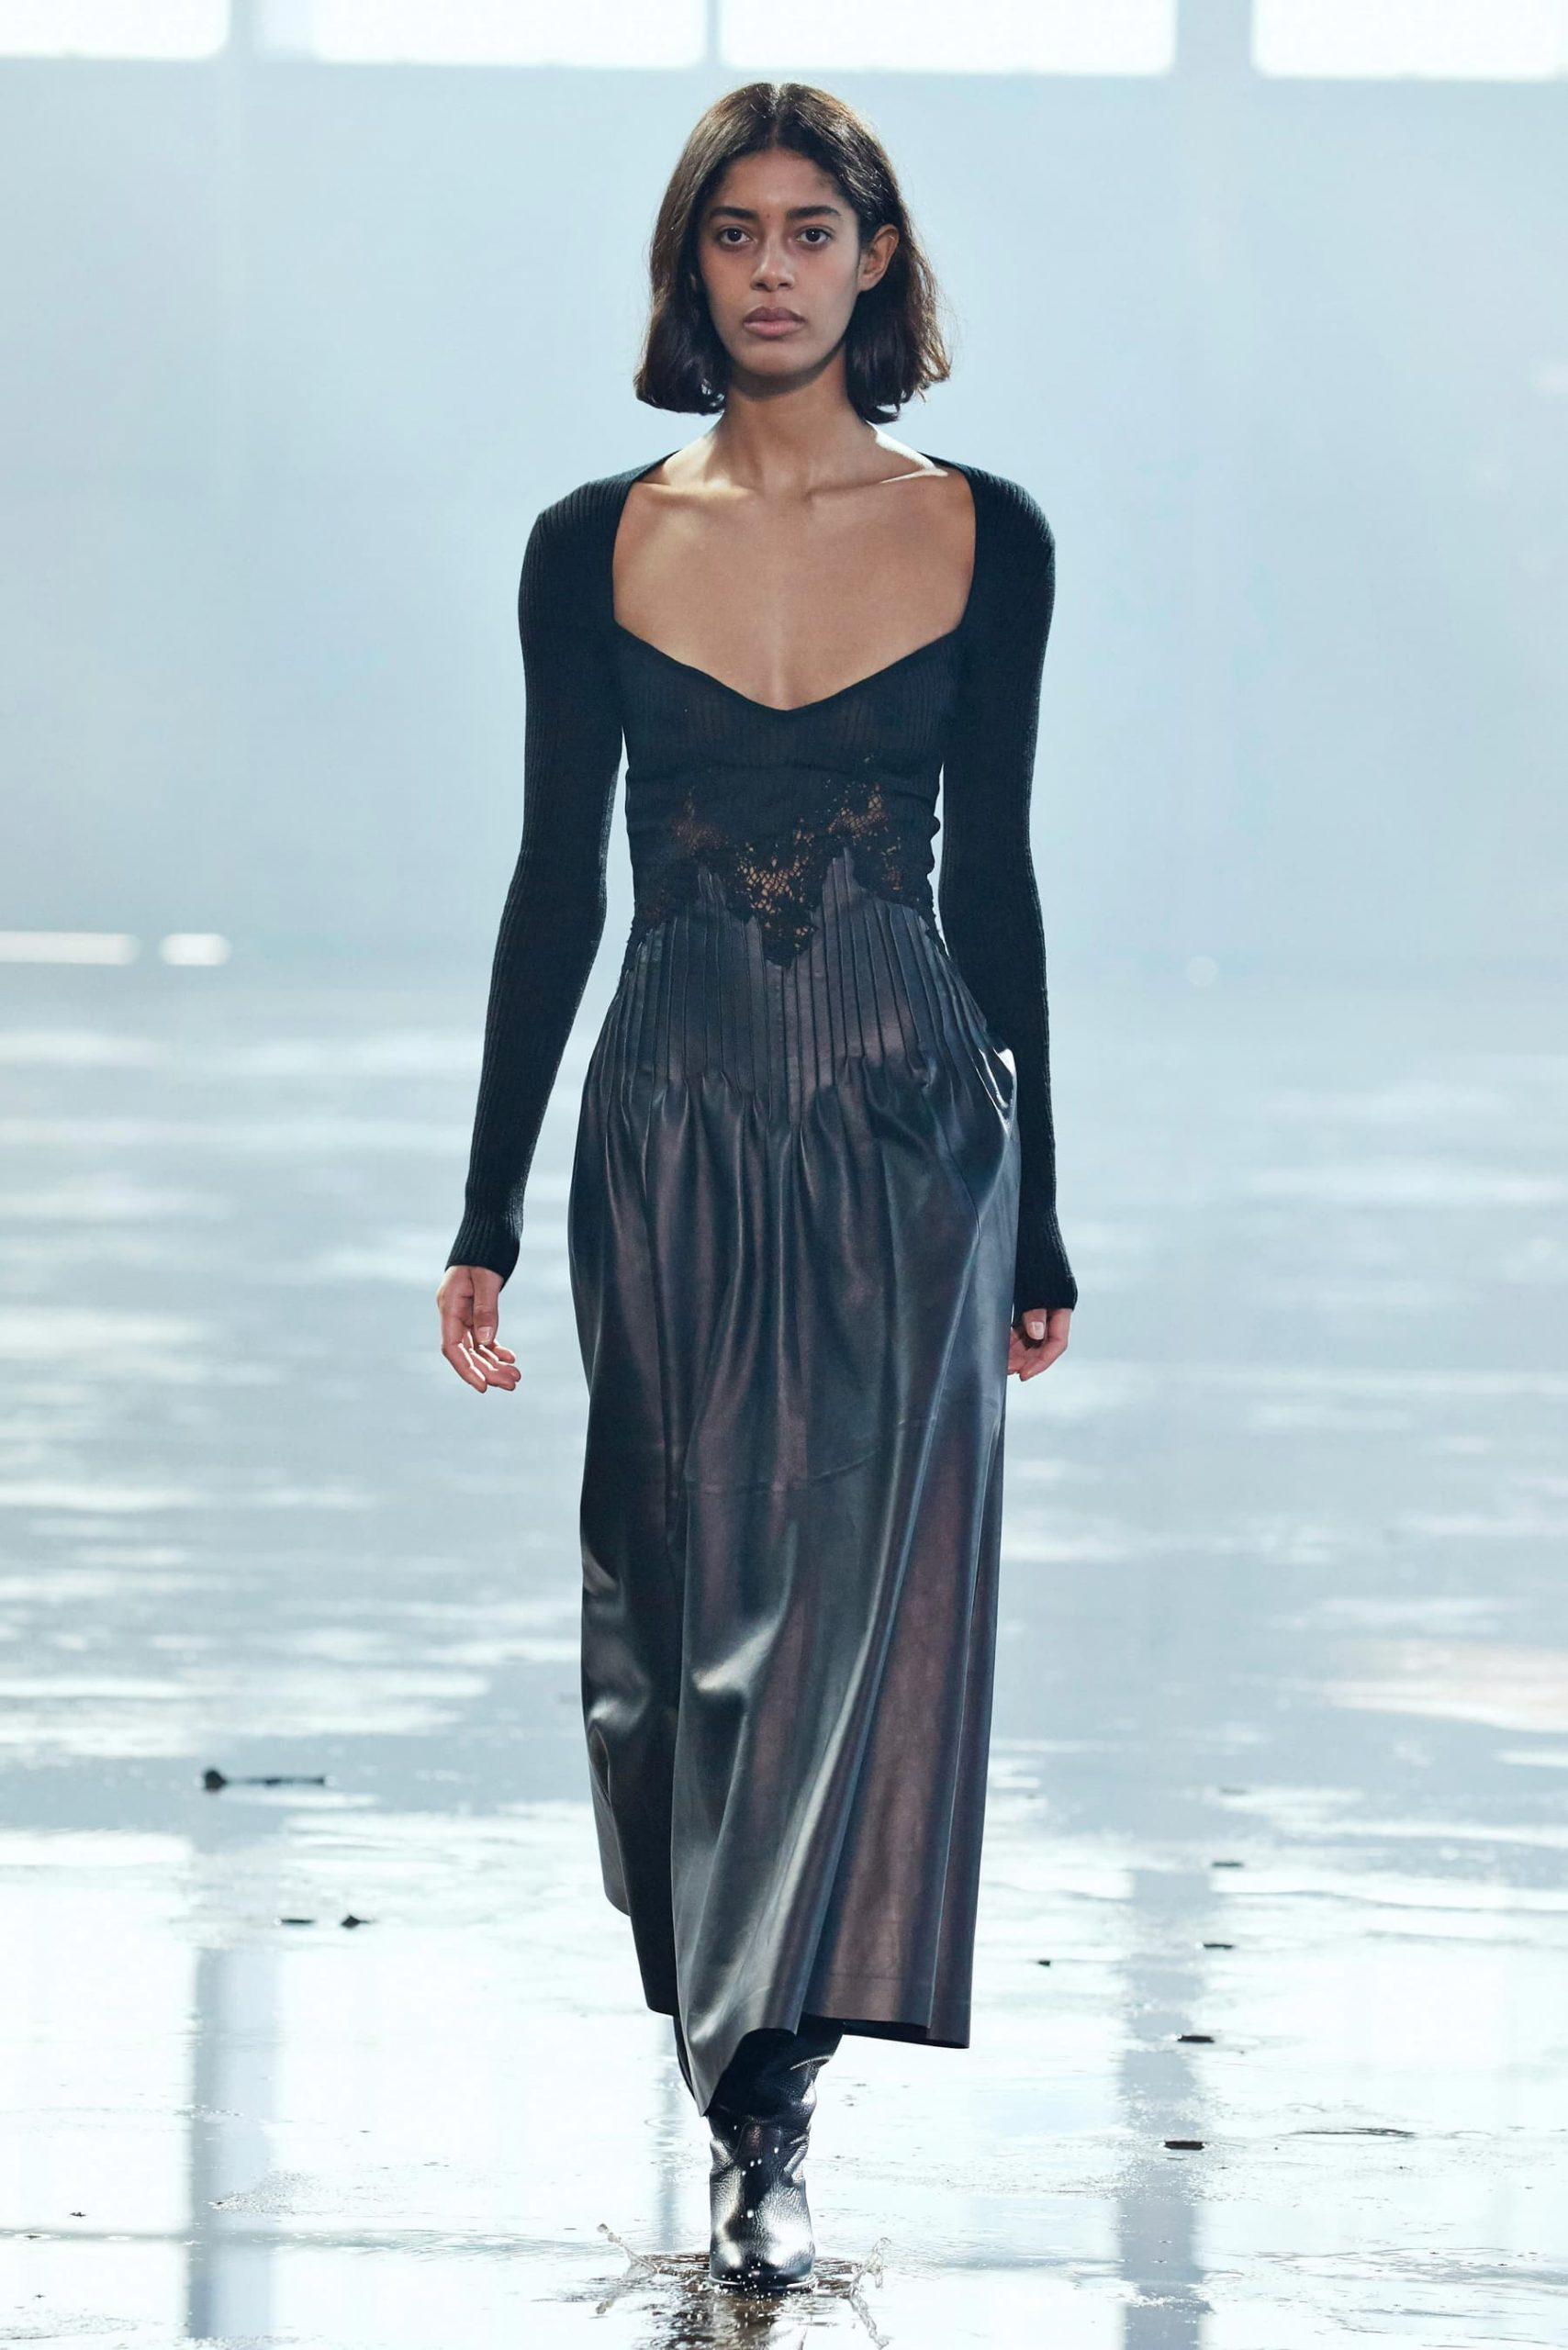 Top 20 Breakout Fashion Show Models of Fall 2021 Photos